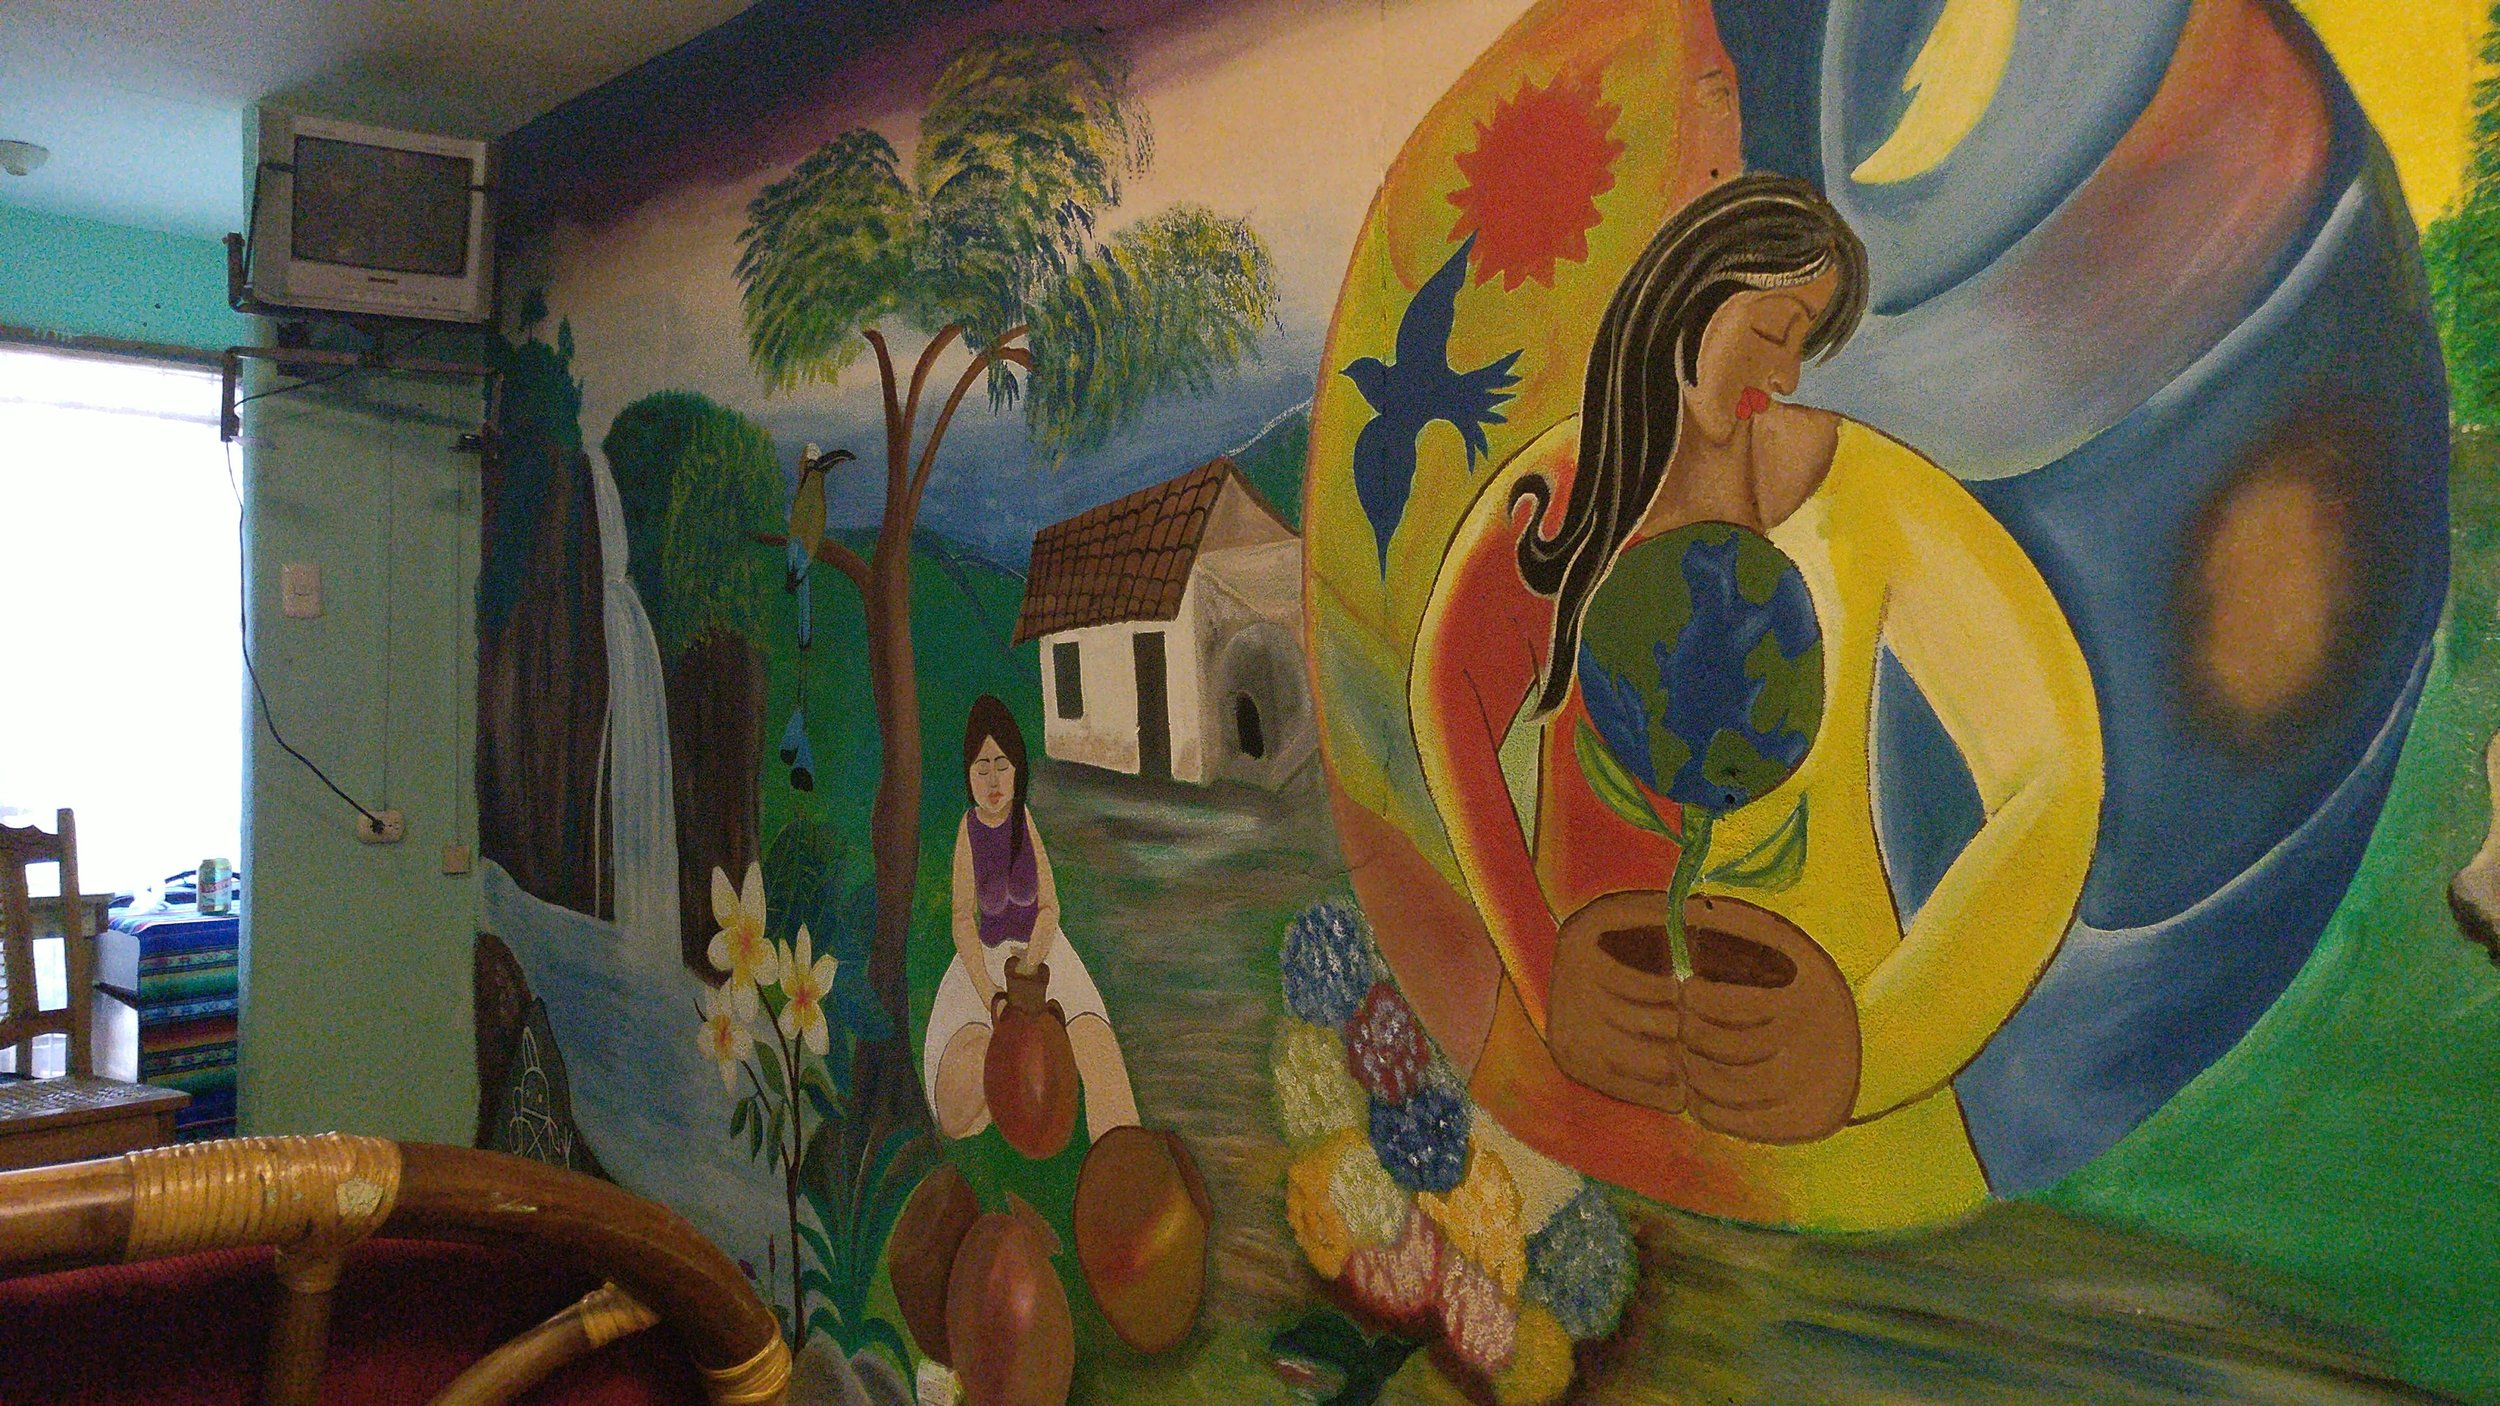 Mural painted by Ashley!